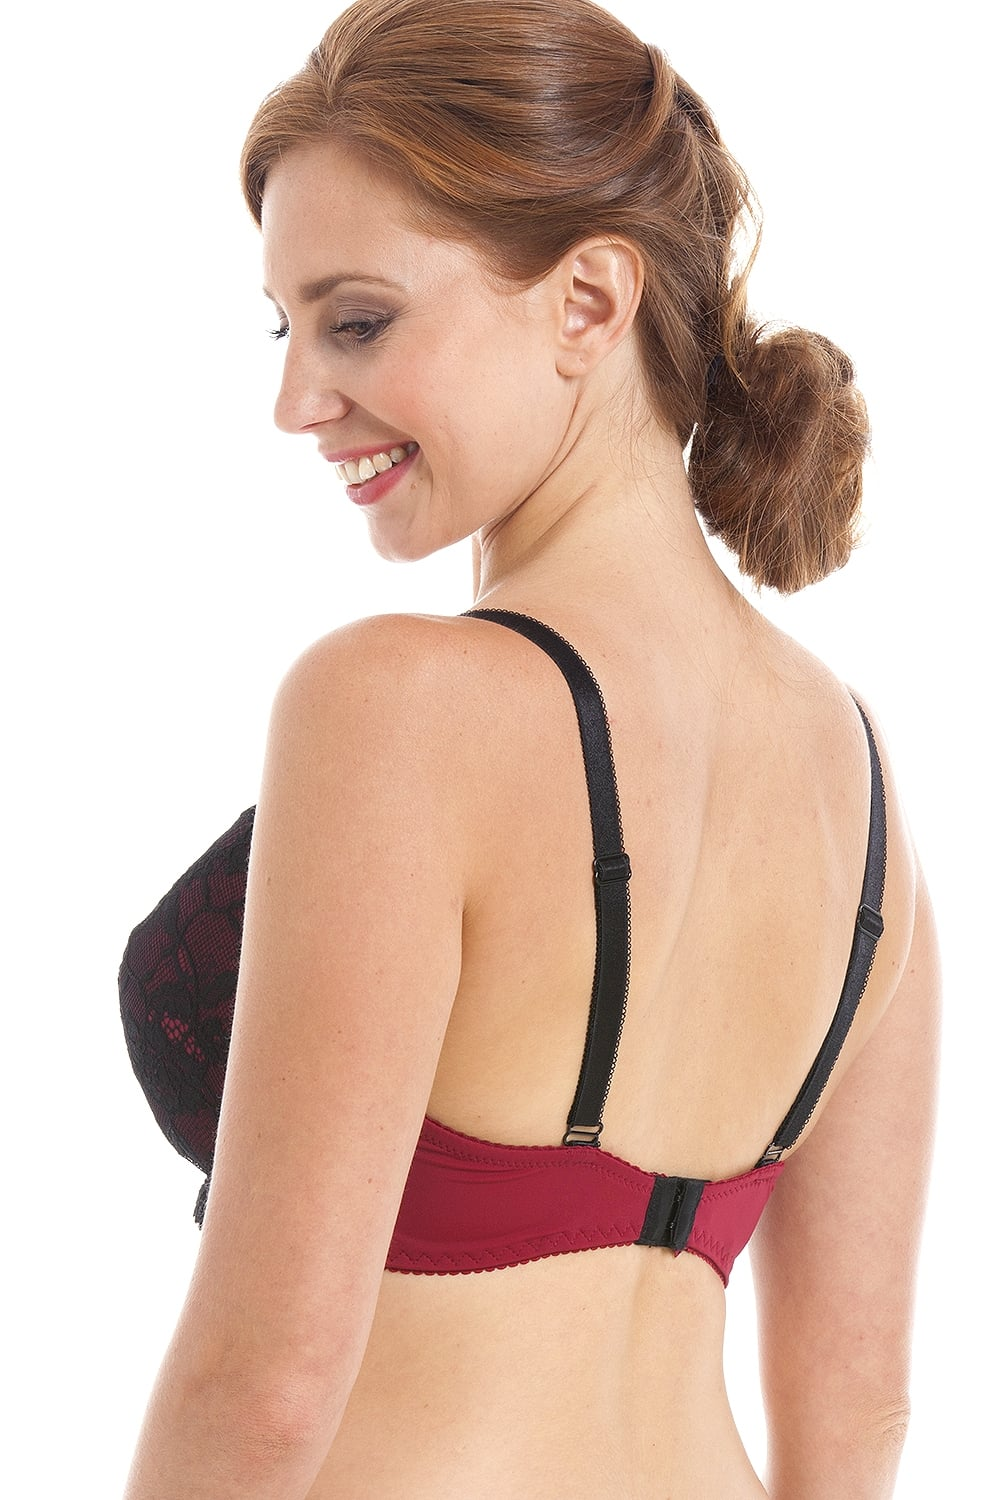 Camille Red And Black Floral Lace Overlay Underwired Padded Bra